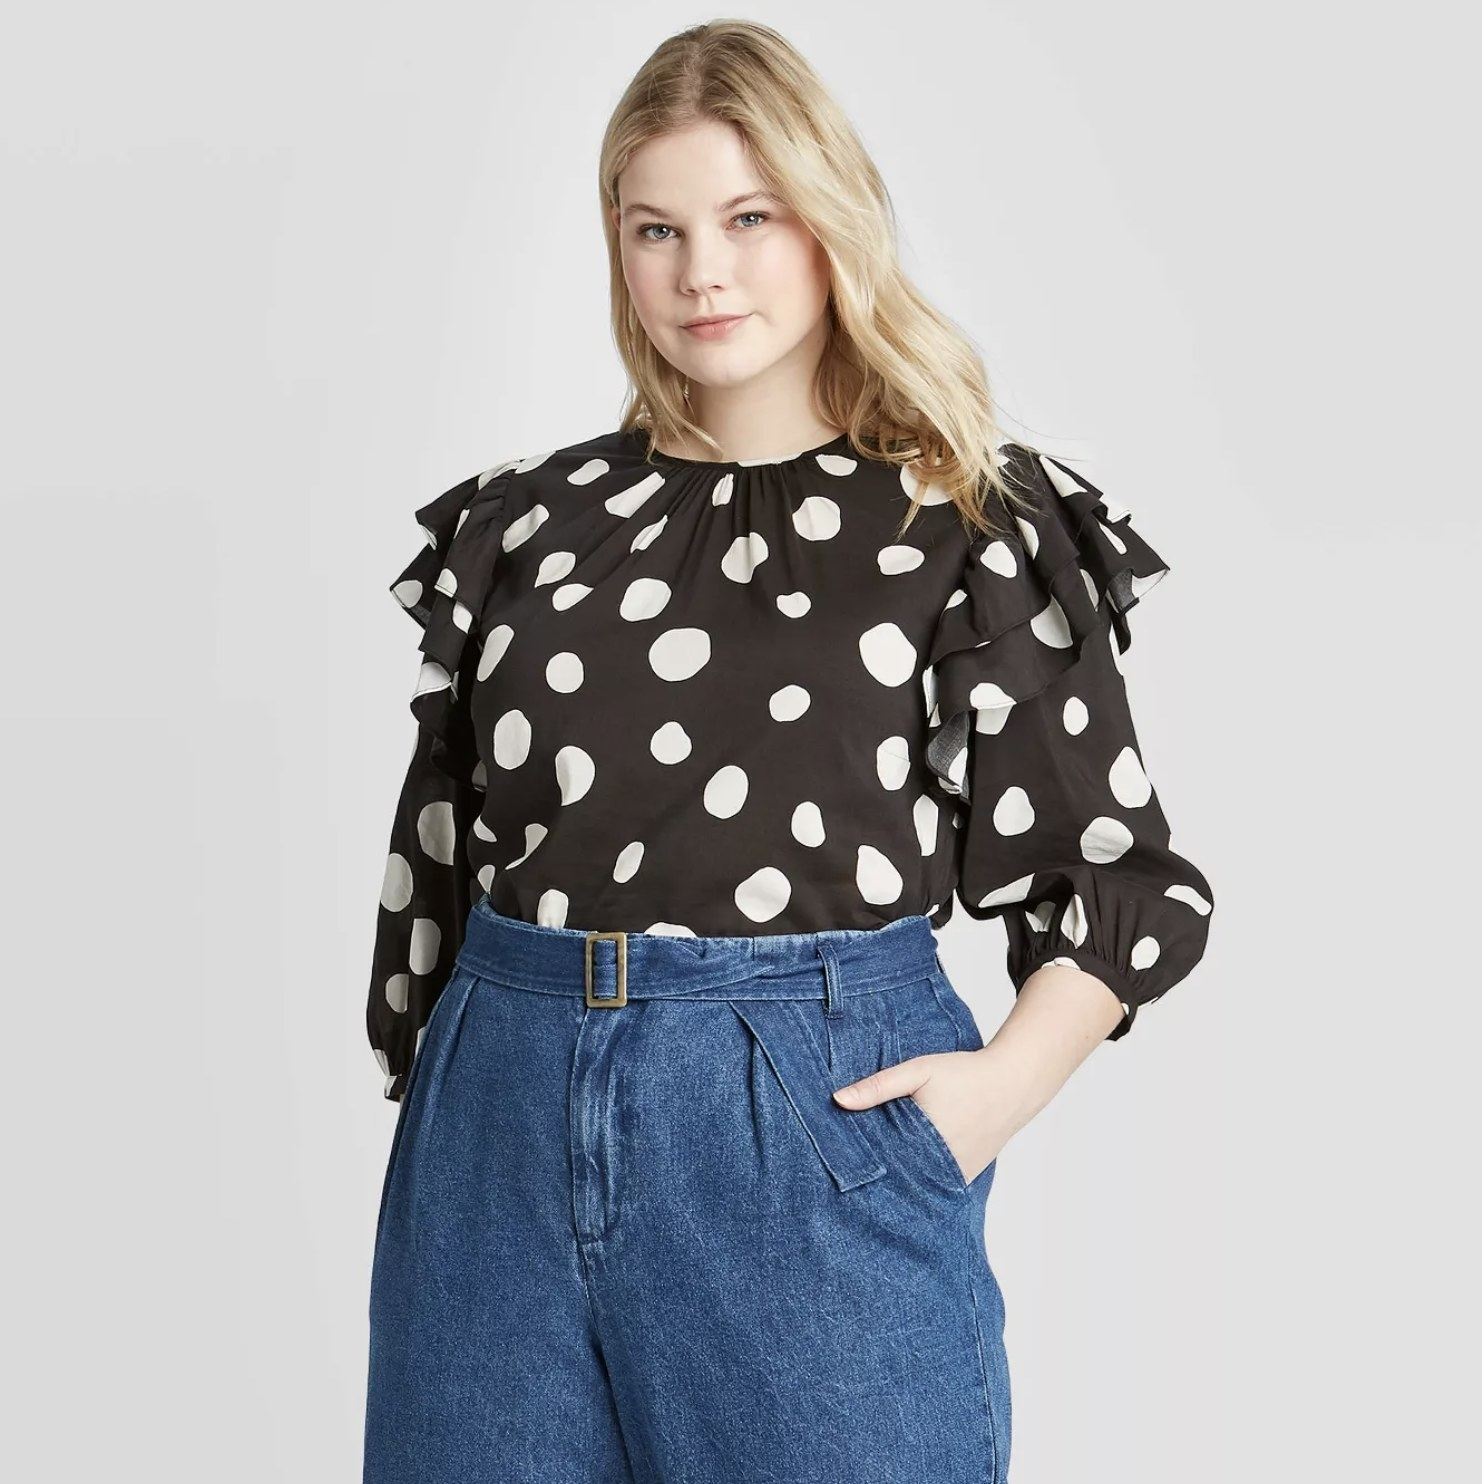 A model wearing a black long sleeve top with white polka dots